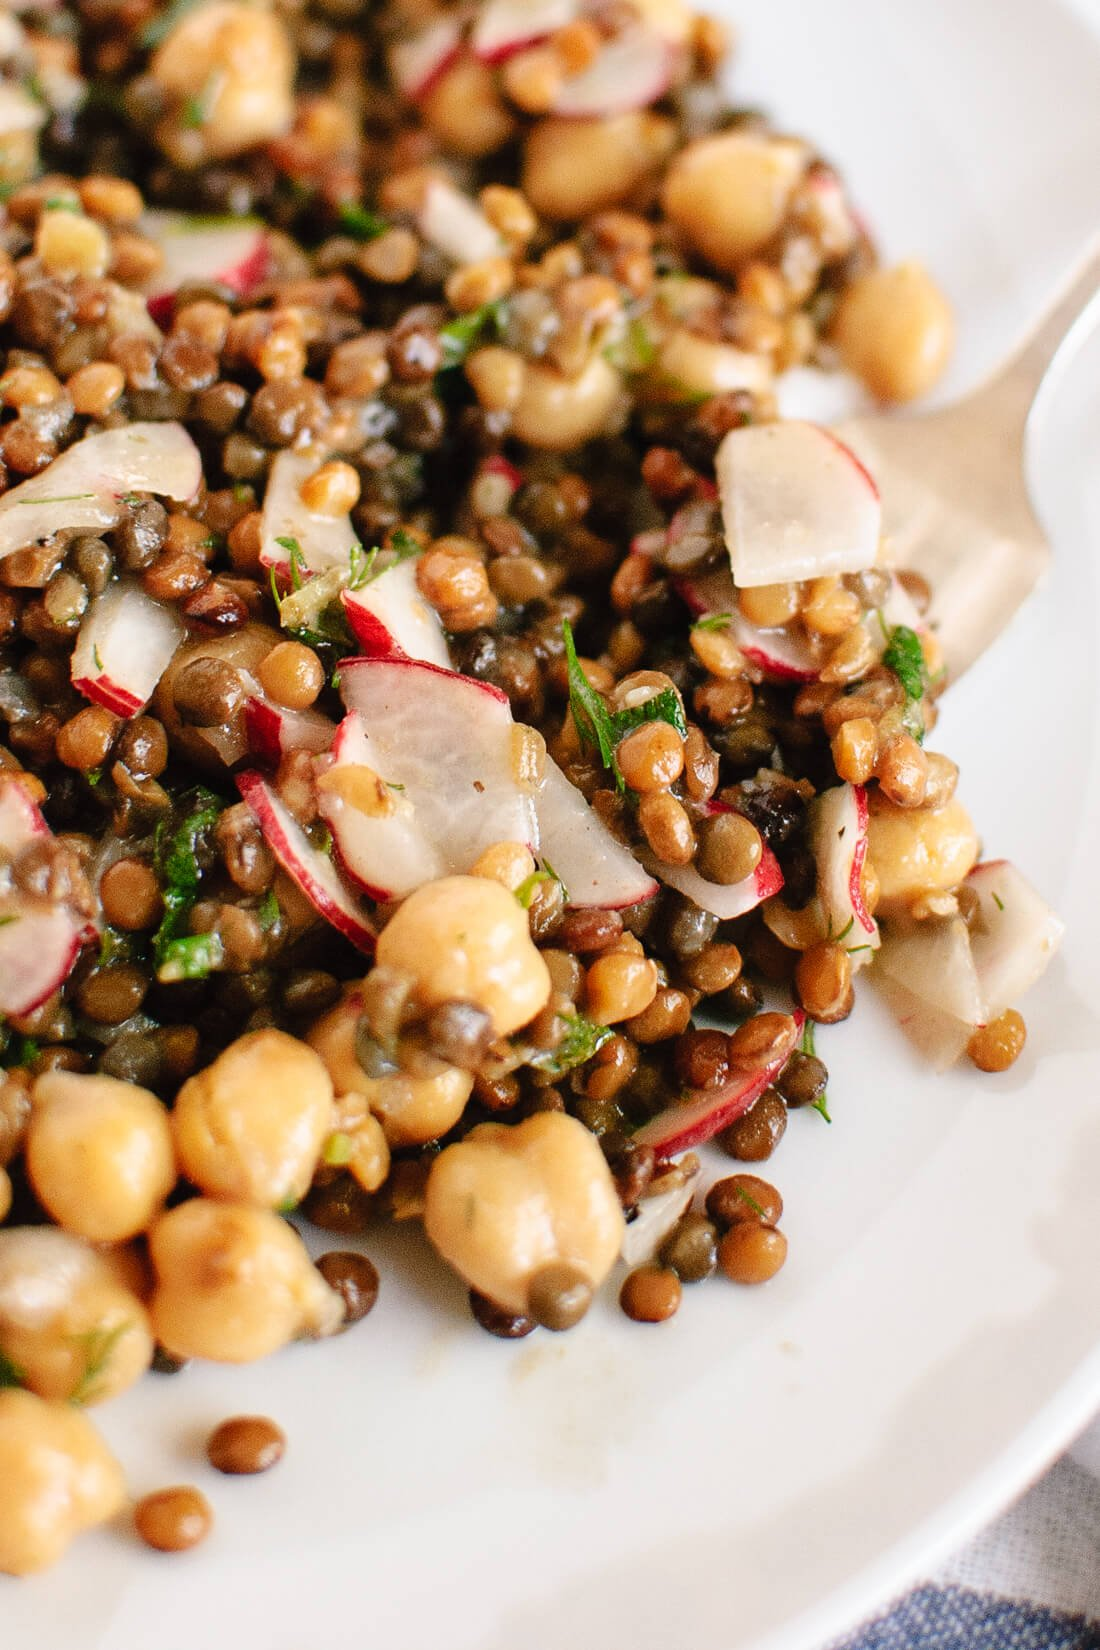 Lemony lentil and chickpea salad with radish and herbs recipe